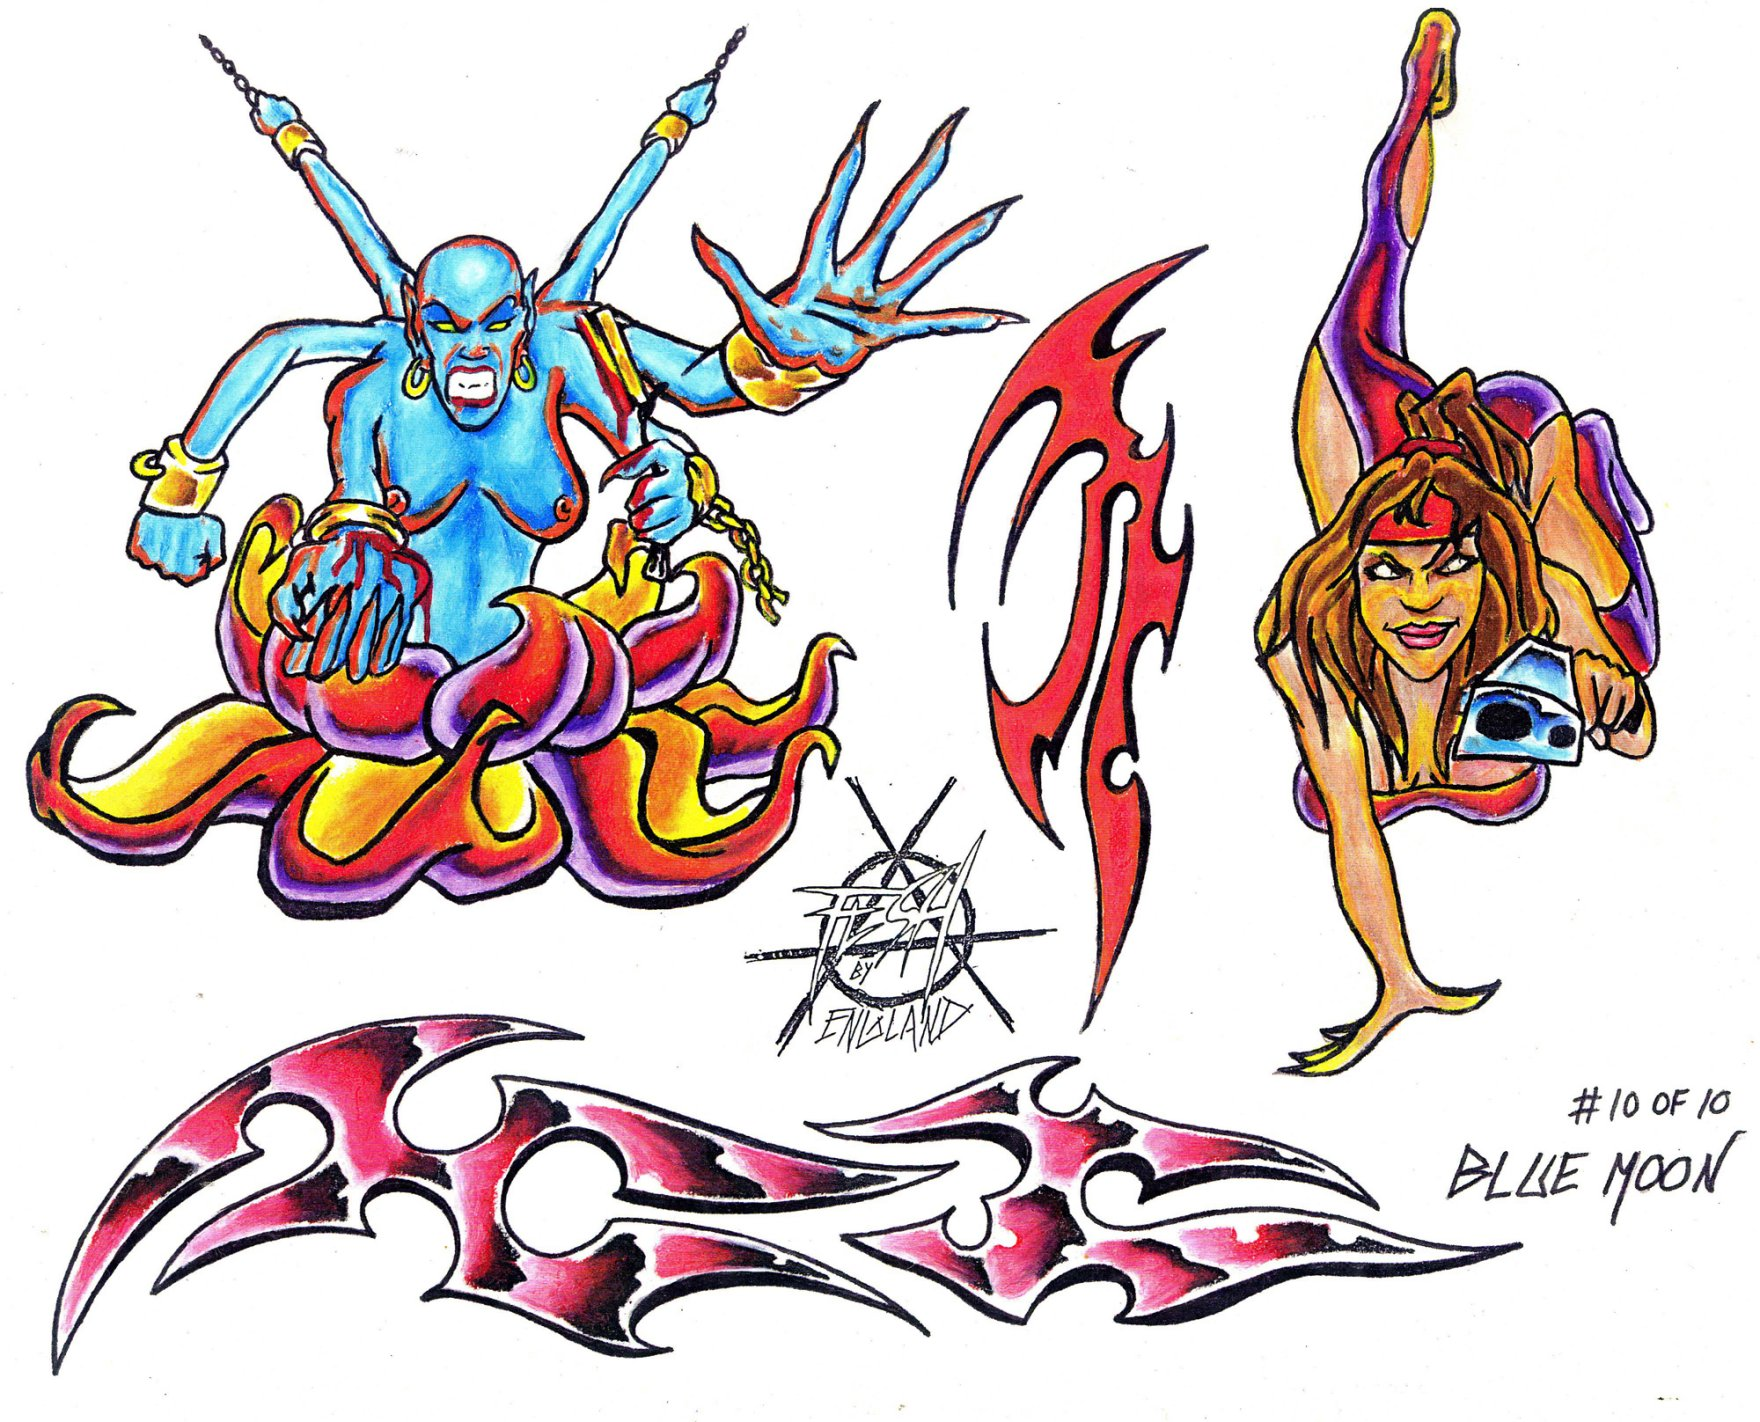 Tattoo designs by Blue Moon.